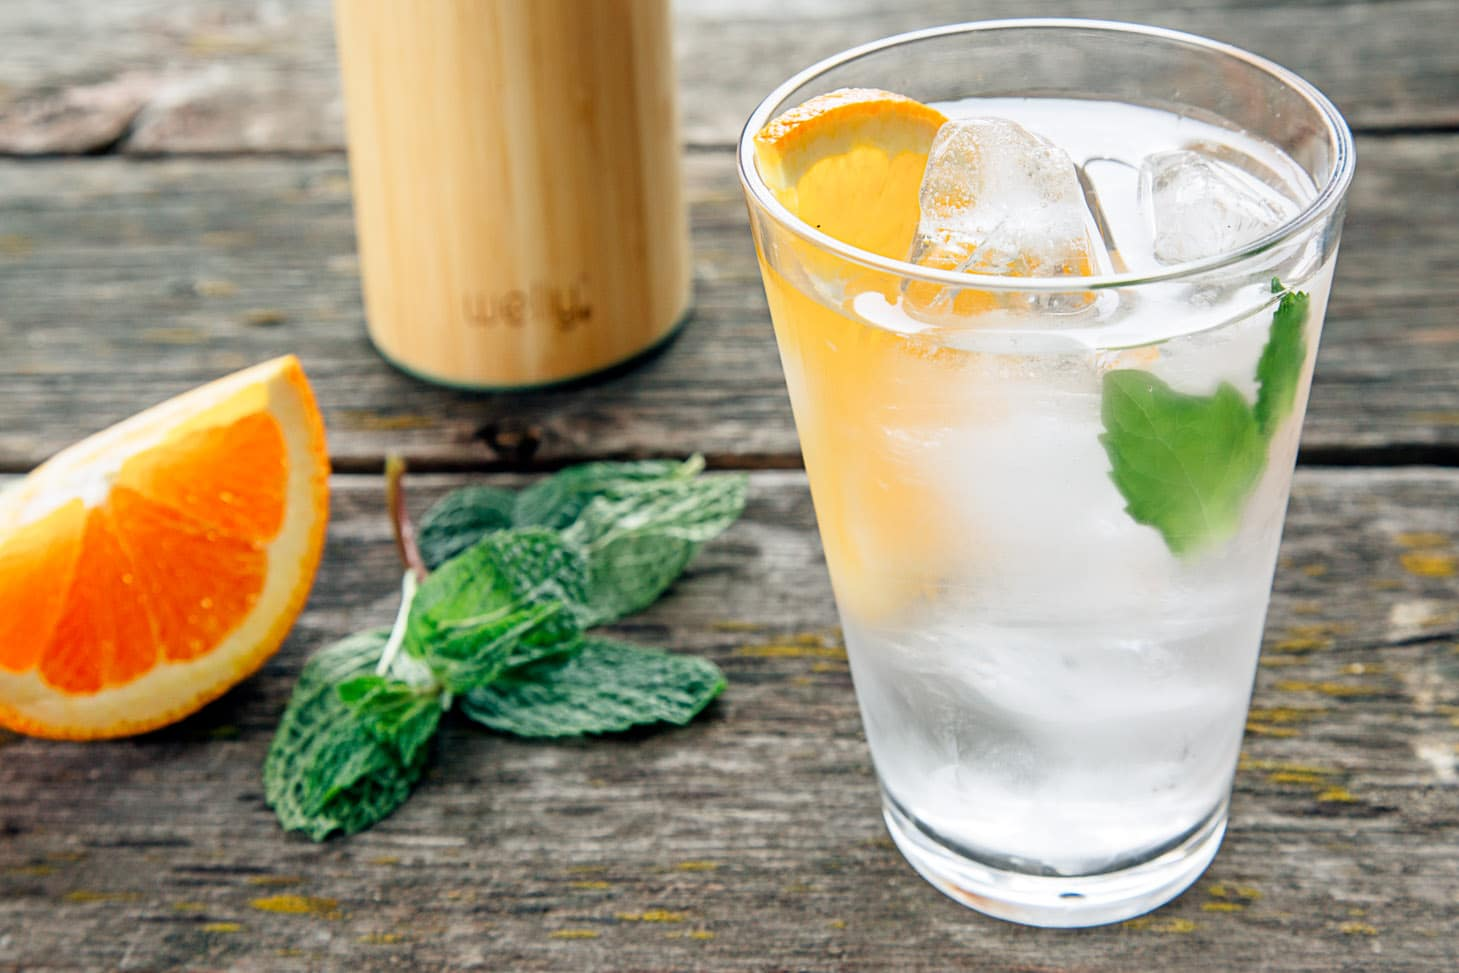 Infused water with oranges and mint in a tall glass.